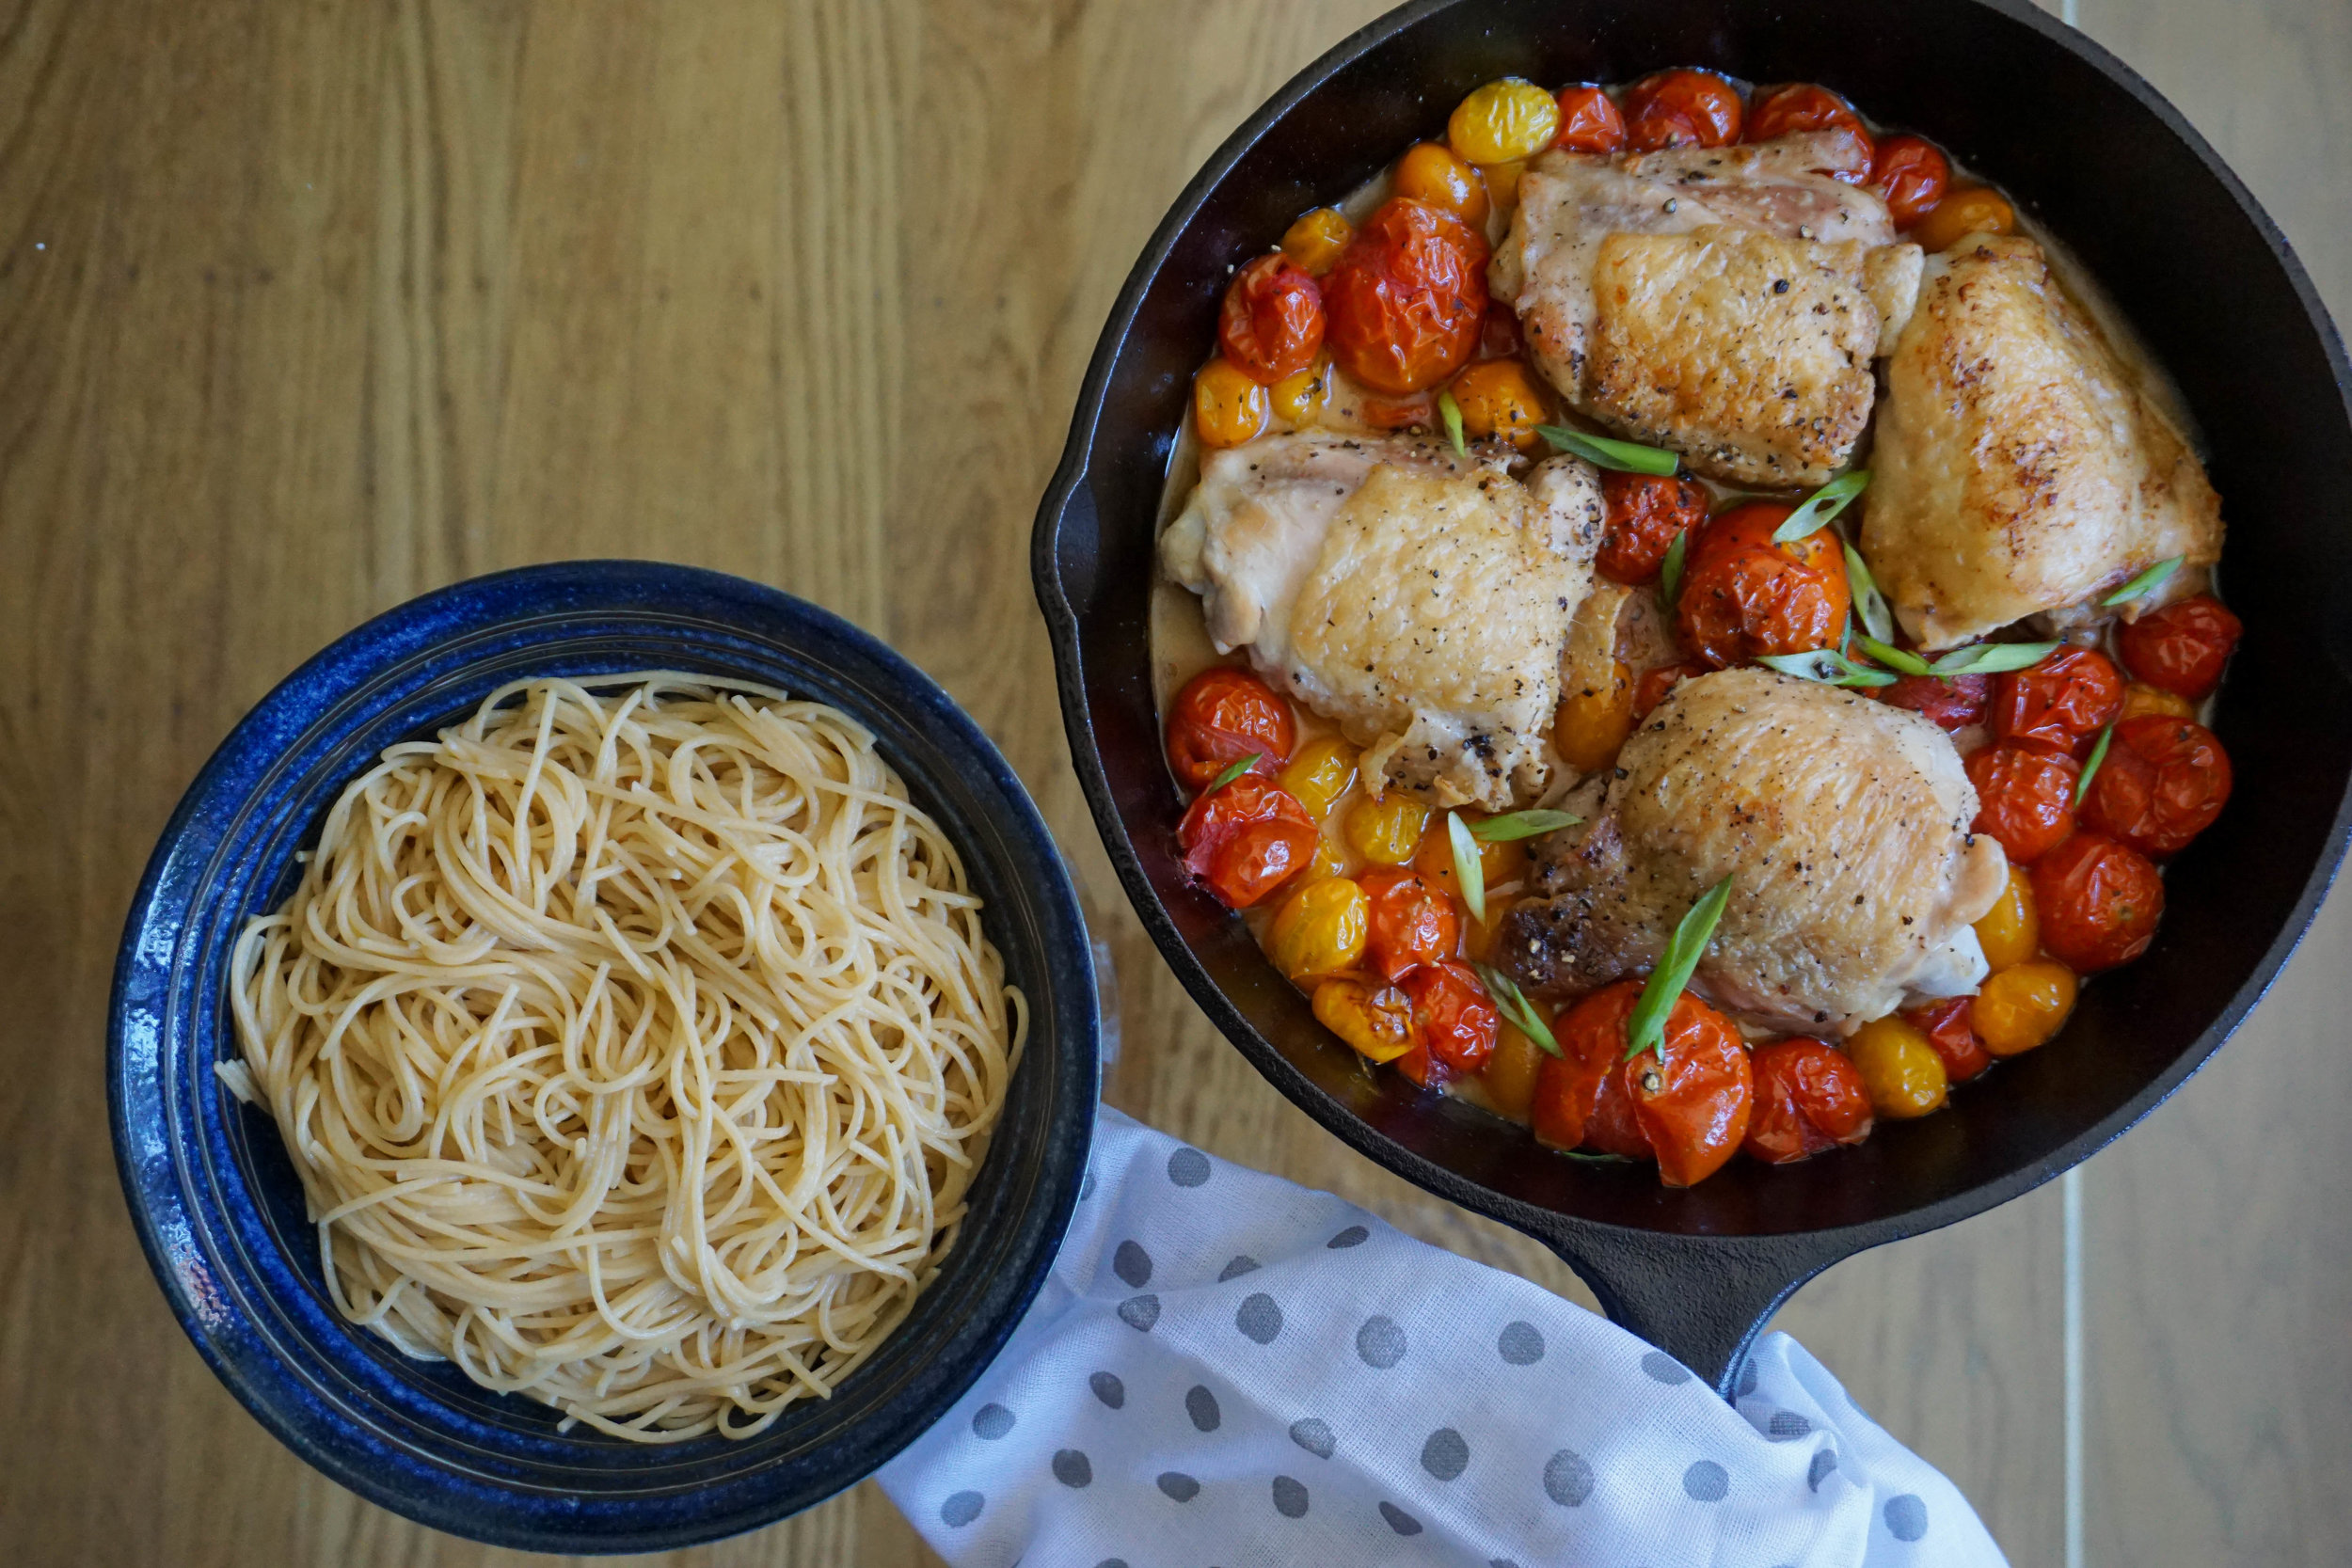 Eat with a nice thick piece of bread or angel hair pasta